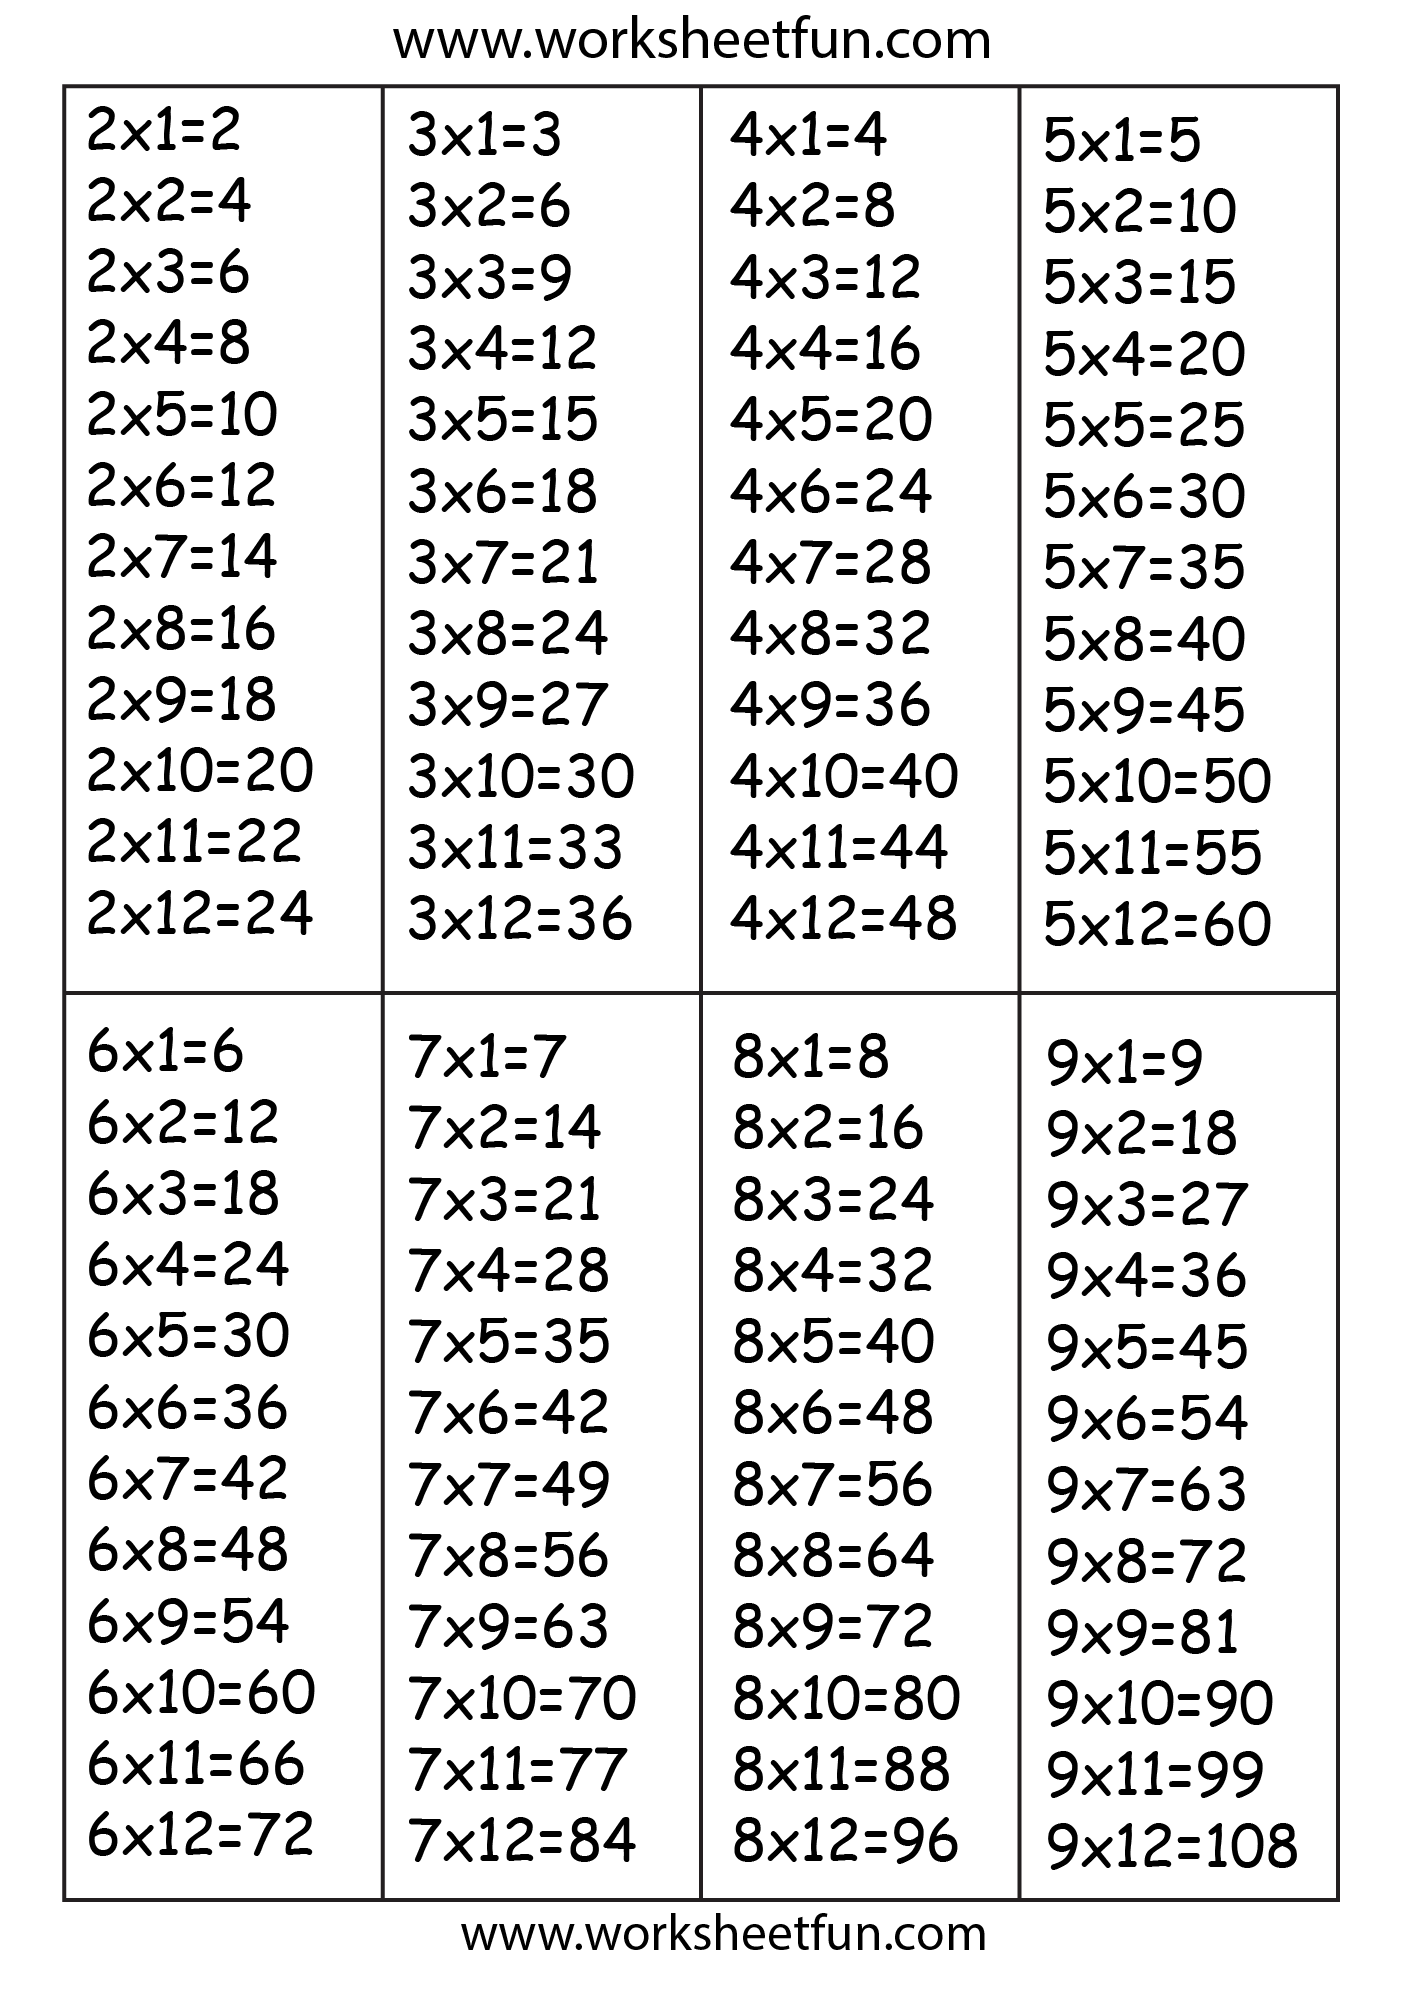 Times table chart also printable worksheets rh pinterest